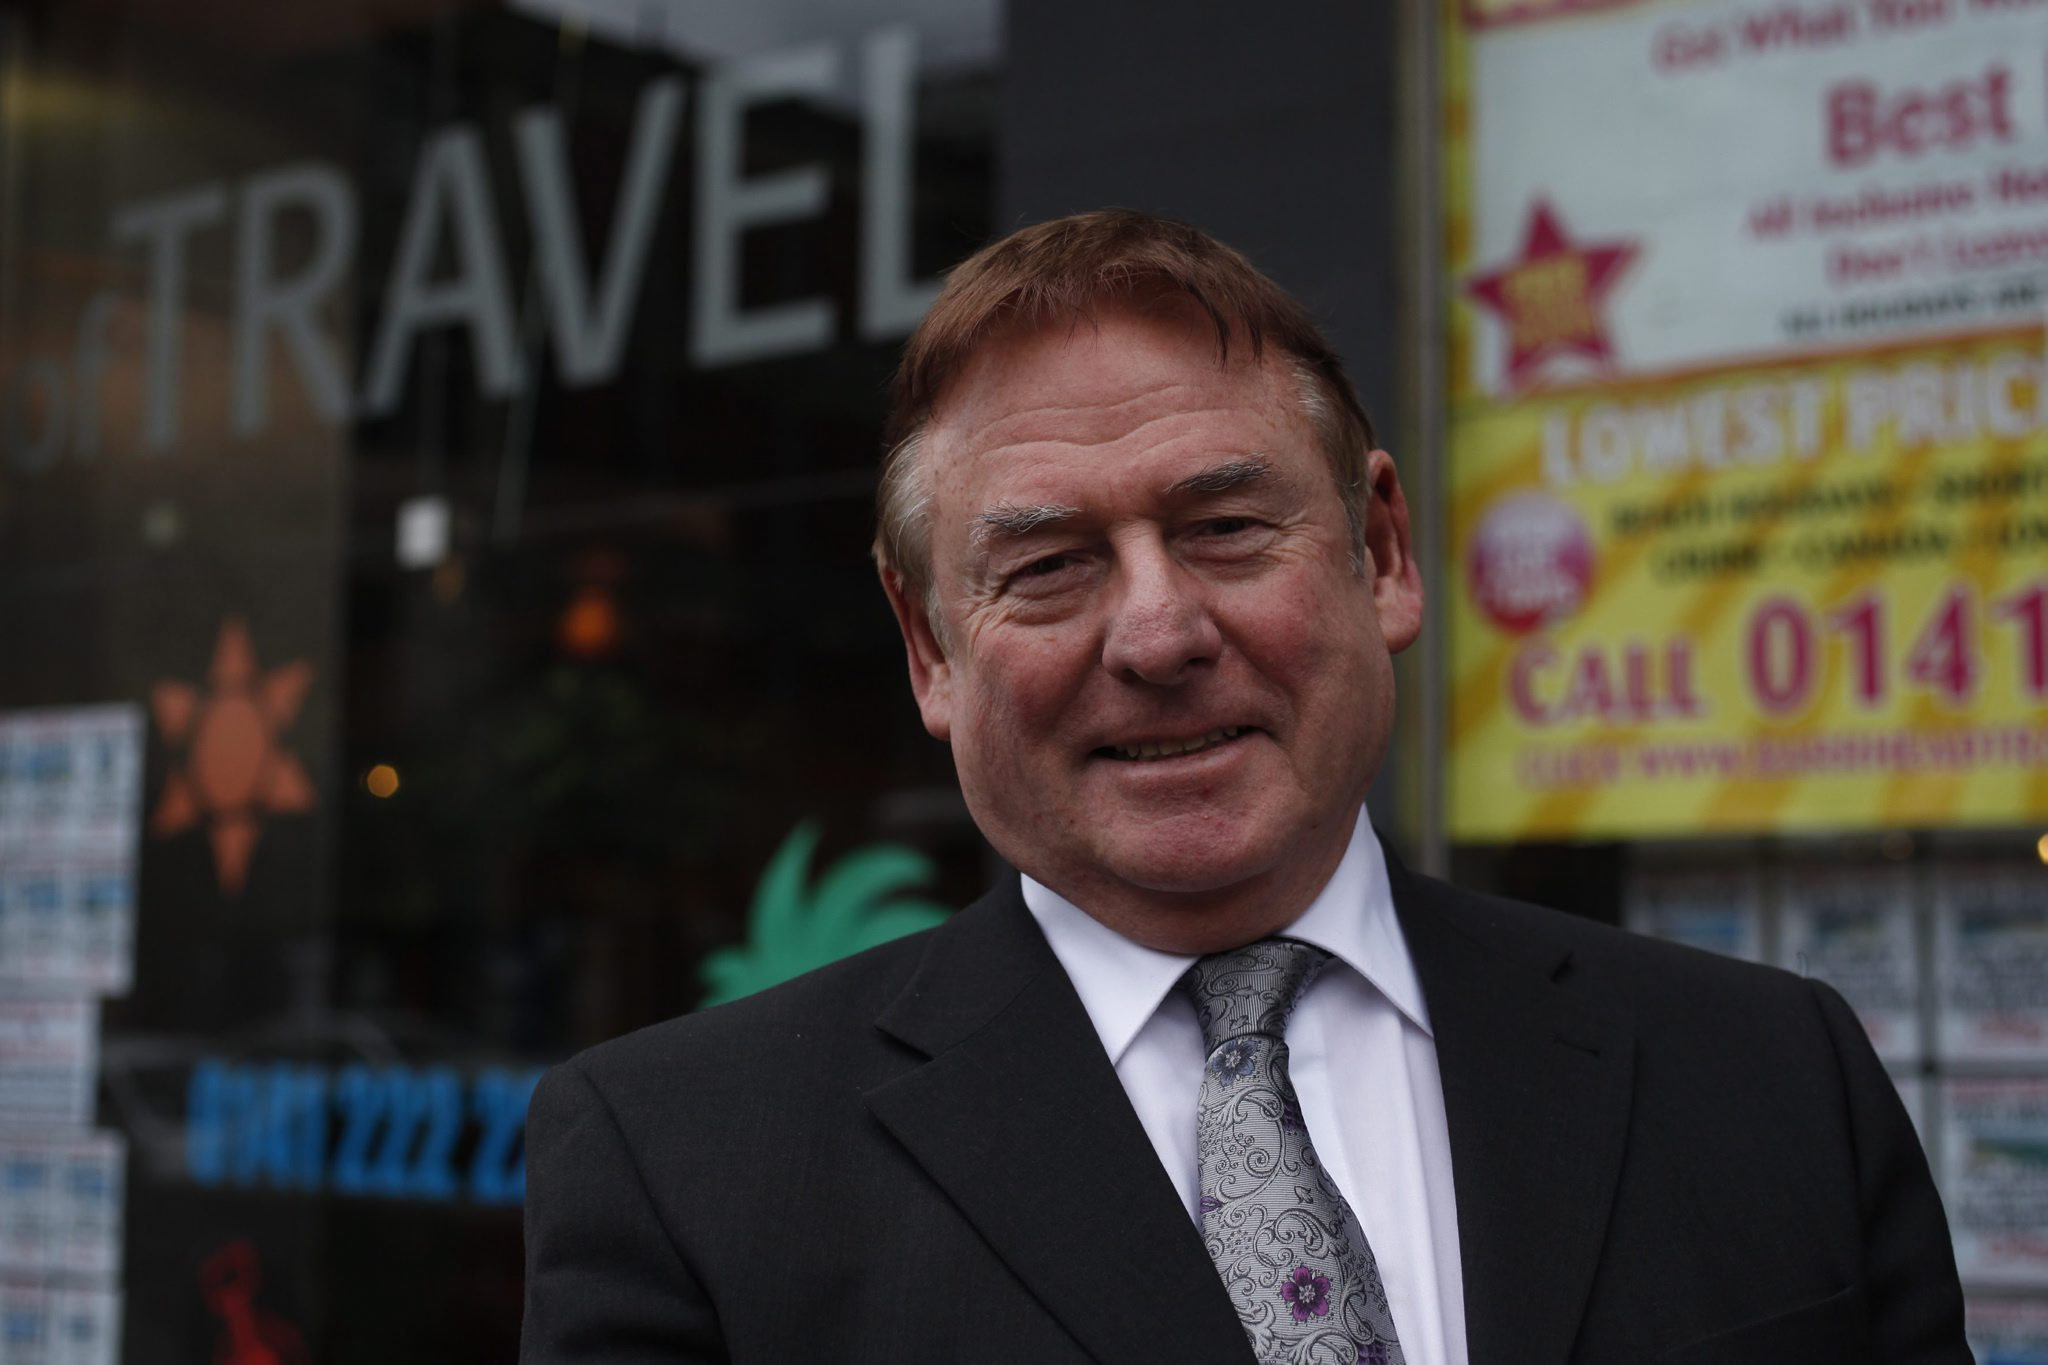 Bill Munro, chairman and founder of Barrhead Travel, which is to open a new store in Above Bar, Southampton